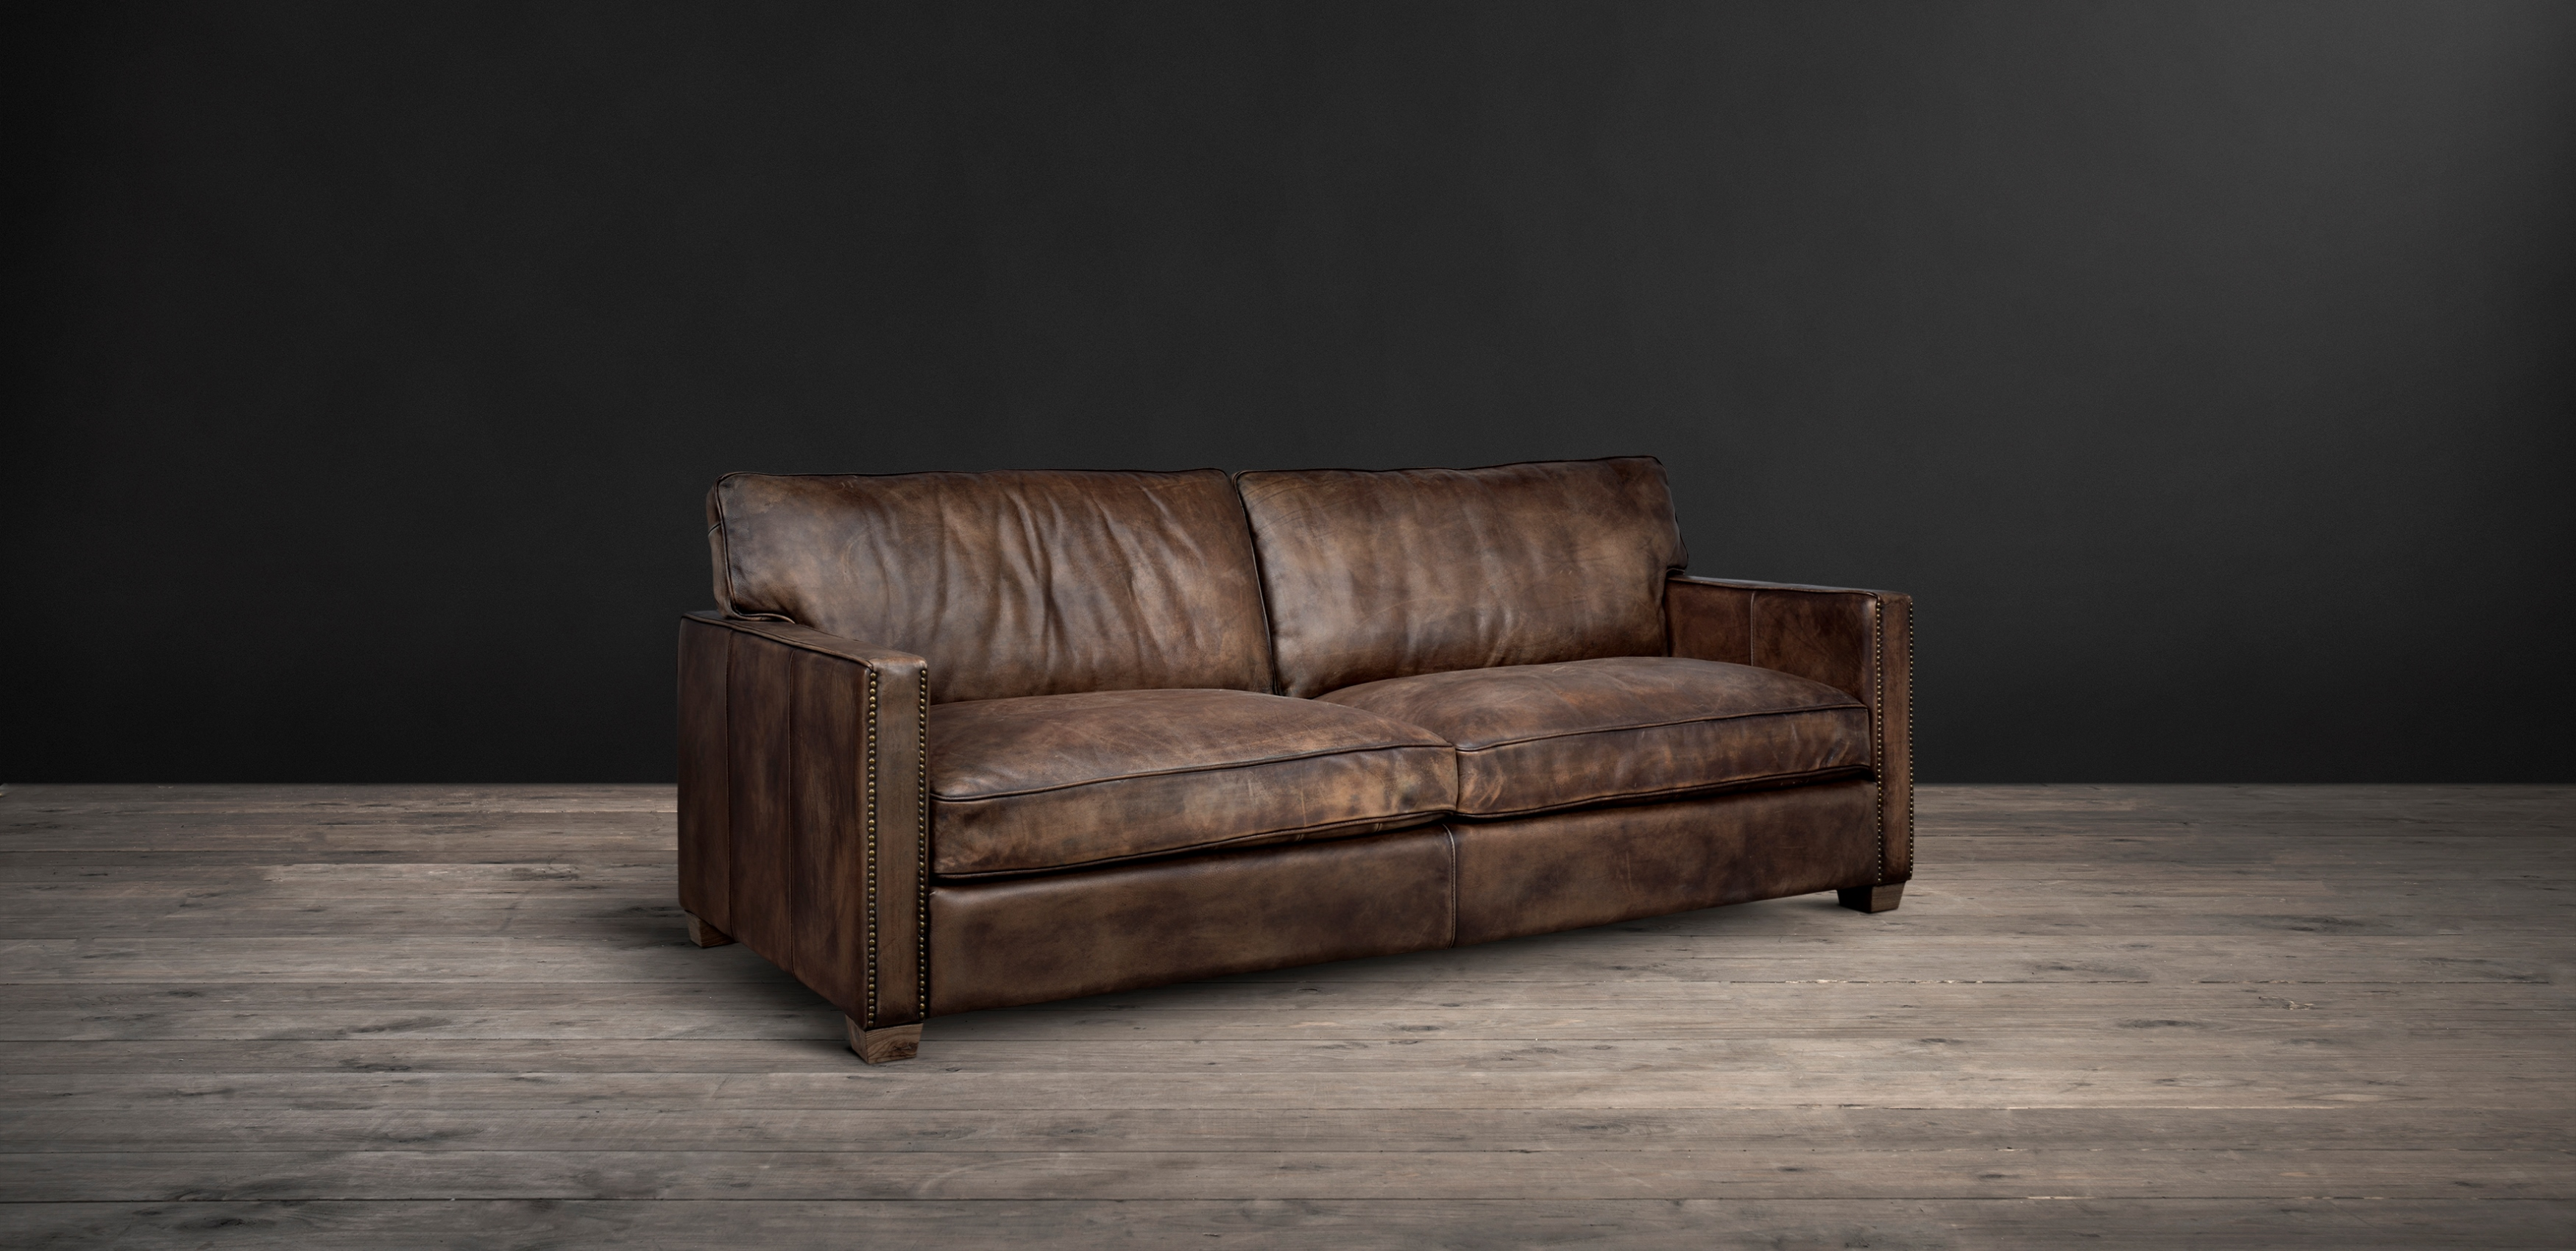 Viscount William The Classic Leather Sofa Timothy Oulton